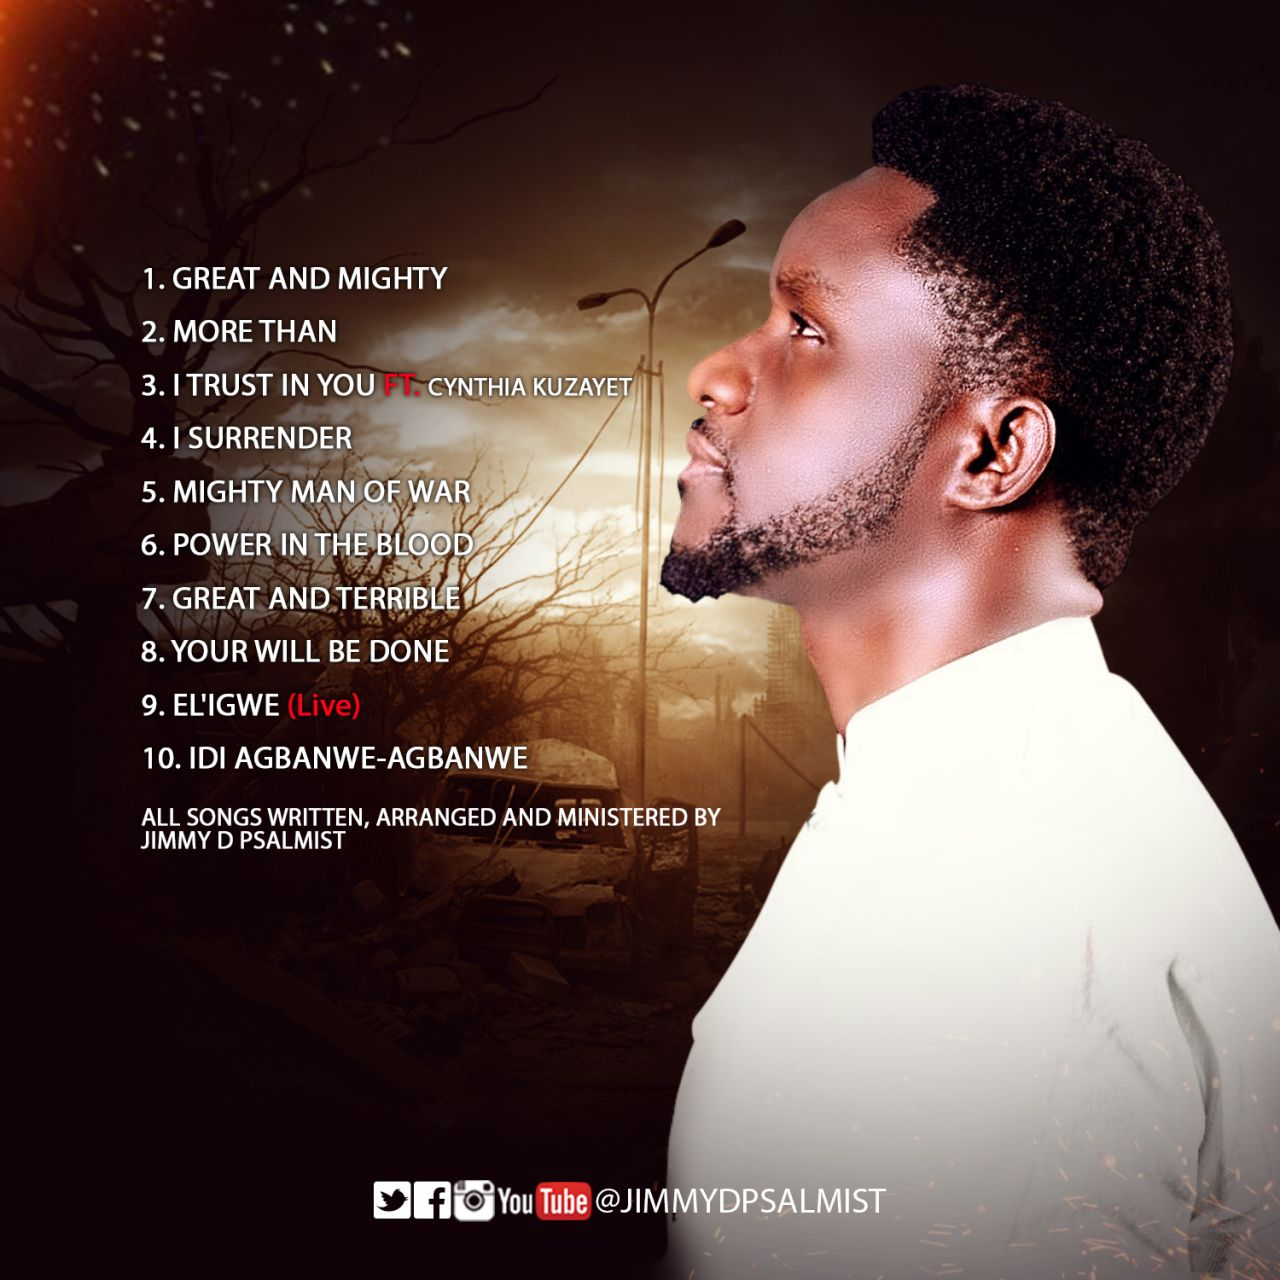 Jimmy D Psalmist Unveils 'Mighty Man Of War' Album Art And